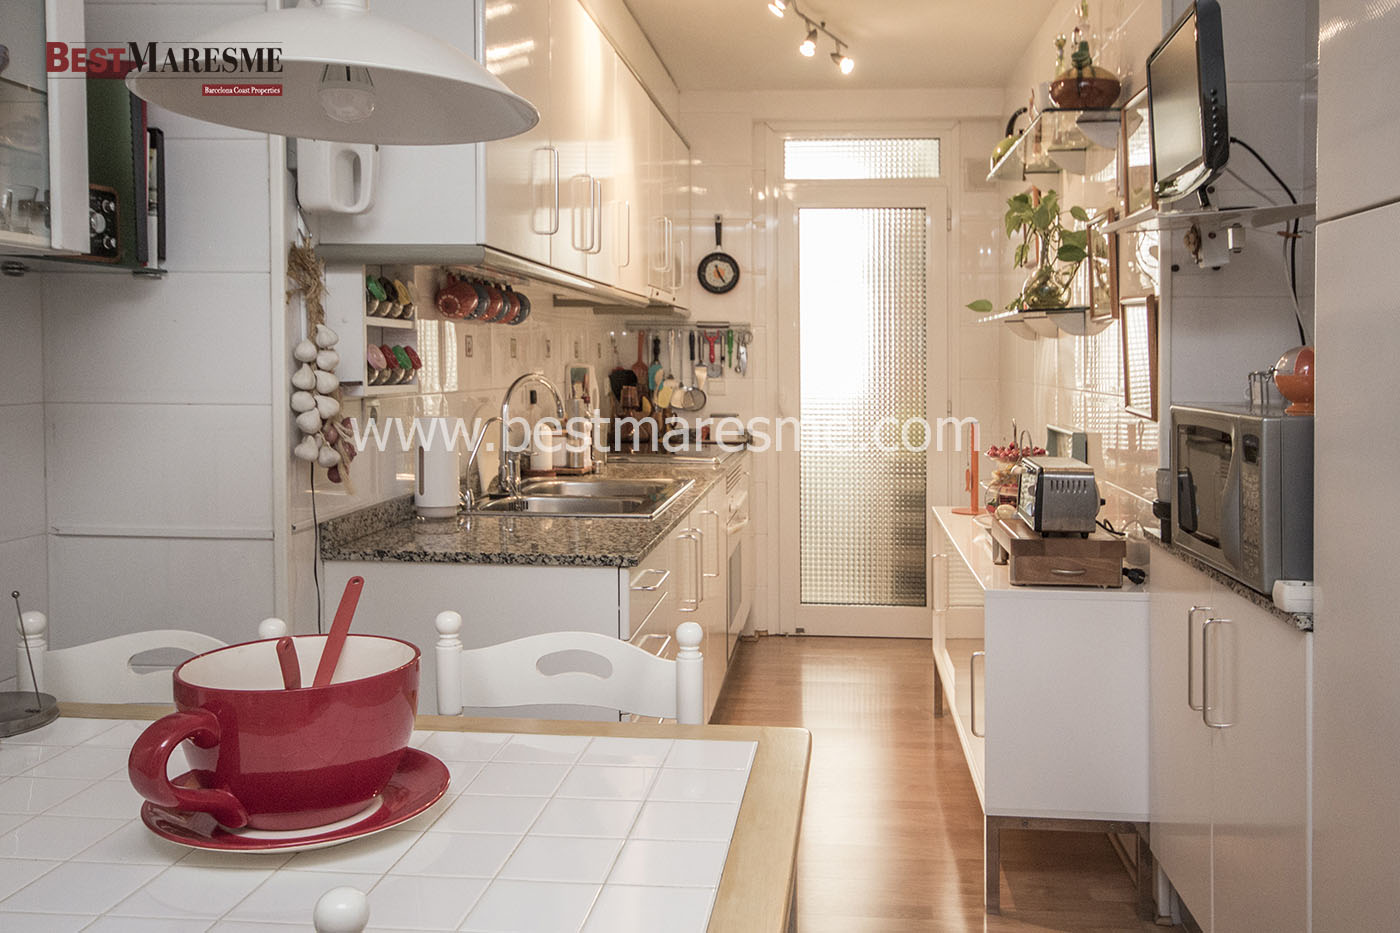 Cocina Office con zona lavado independiente